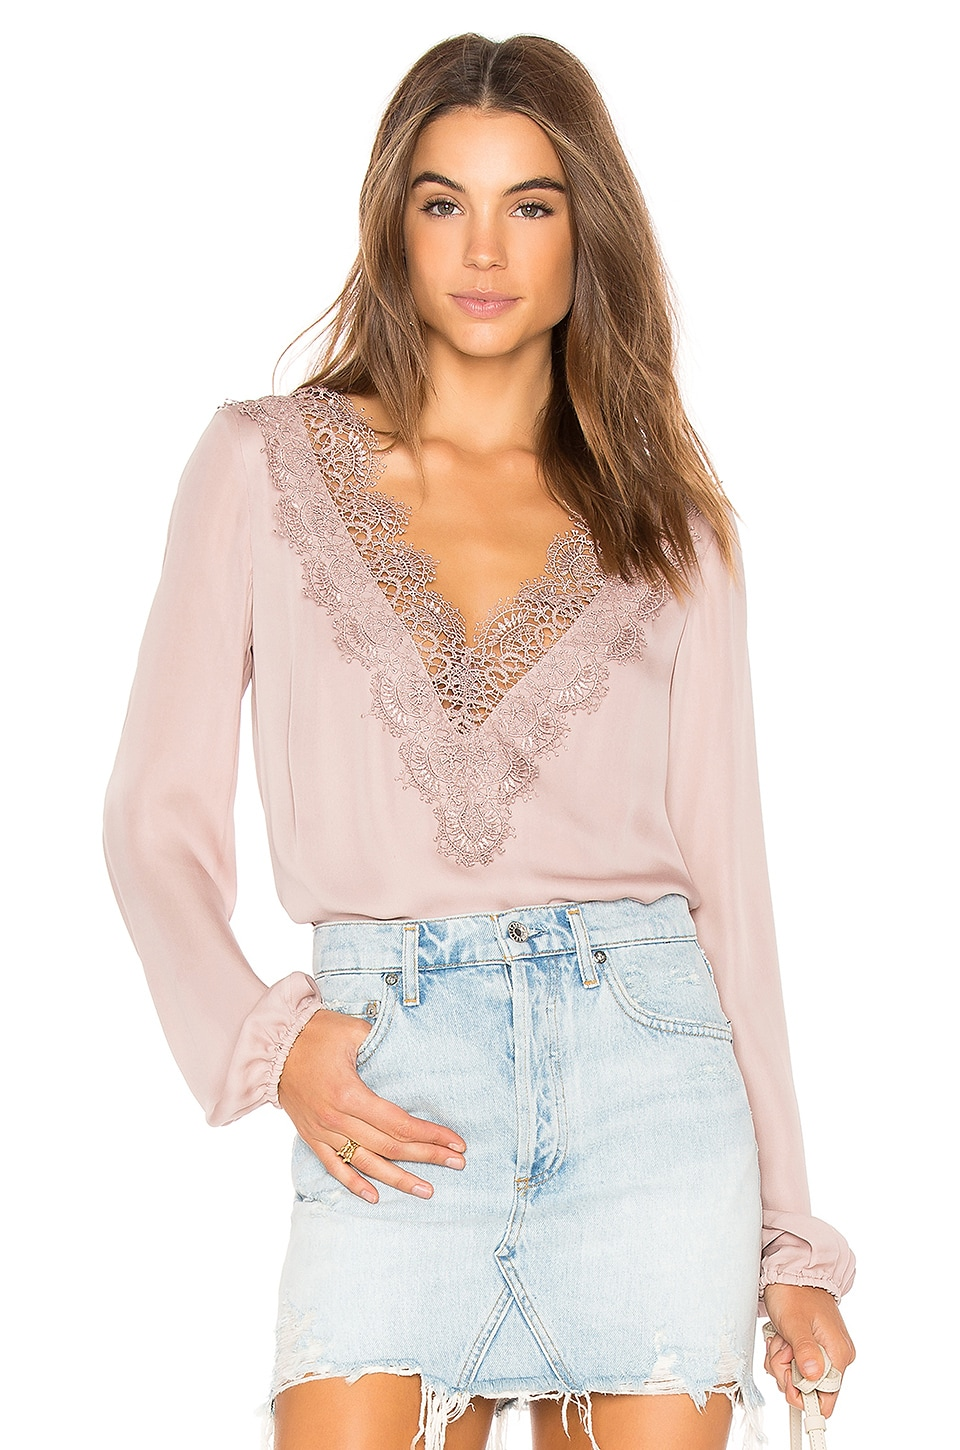 CAMI NYC The Alannah Blouse in Oyster